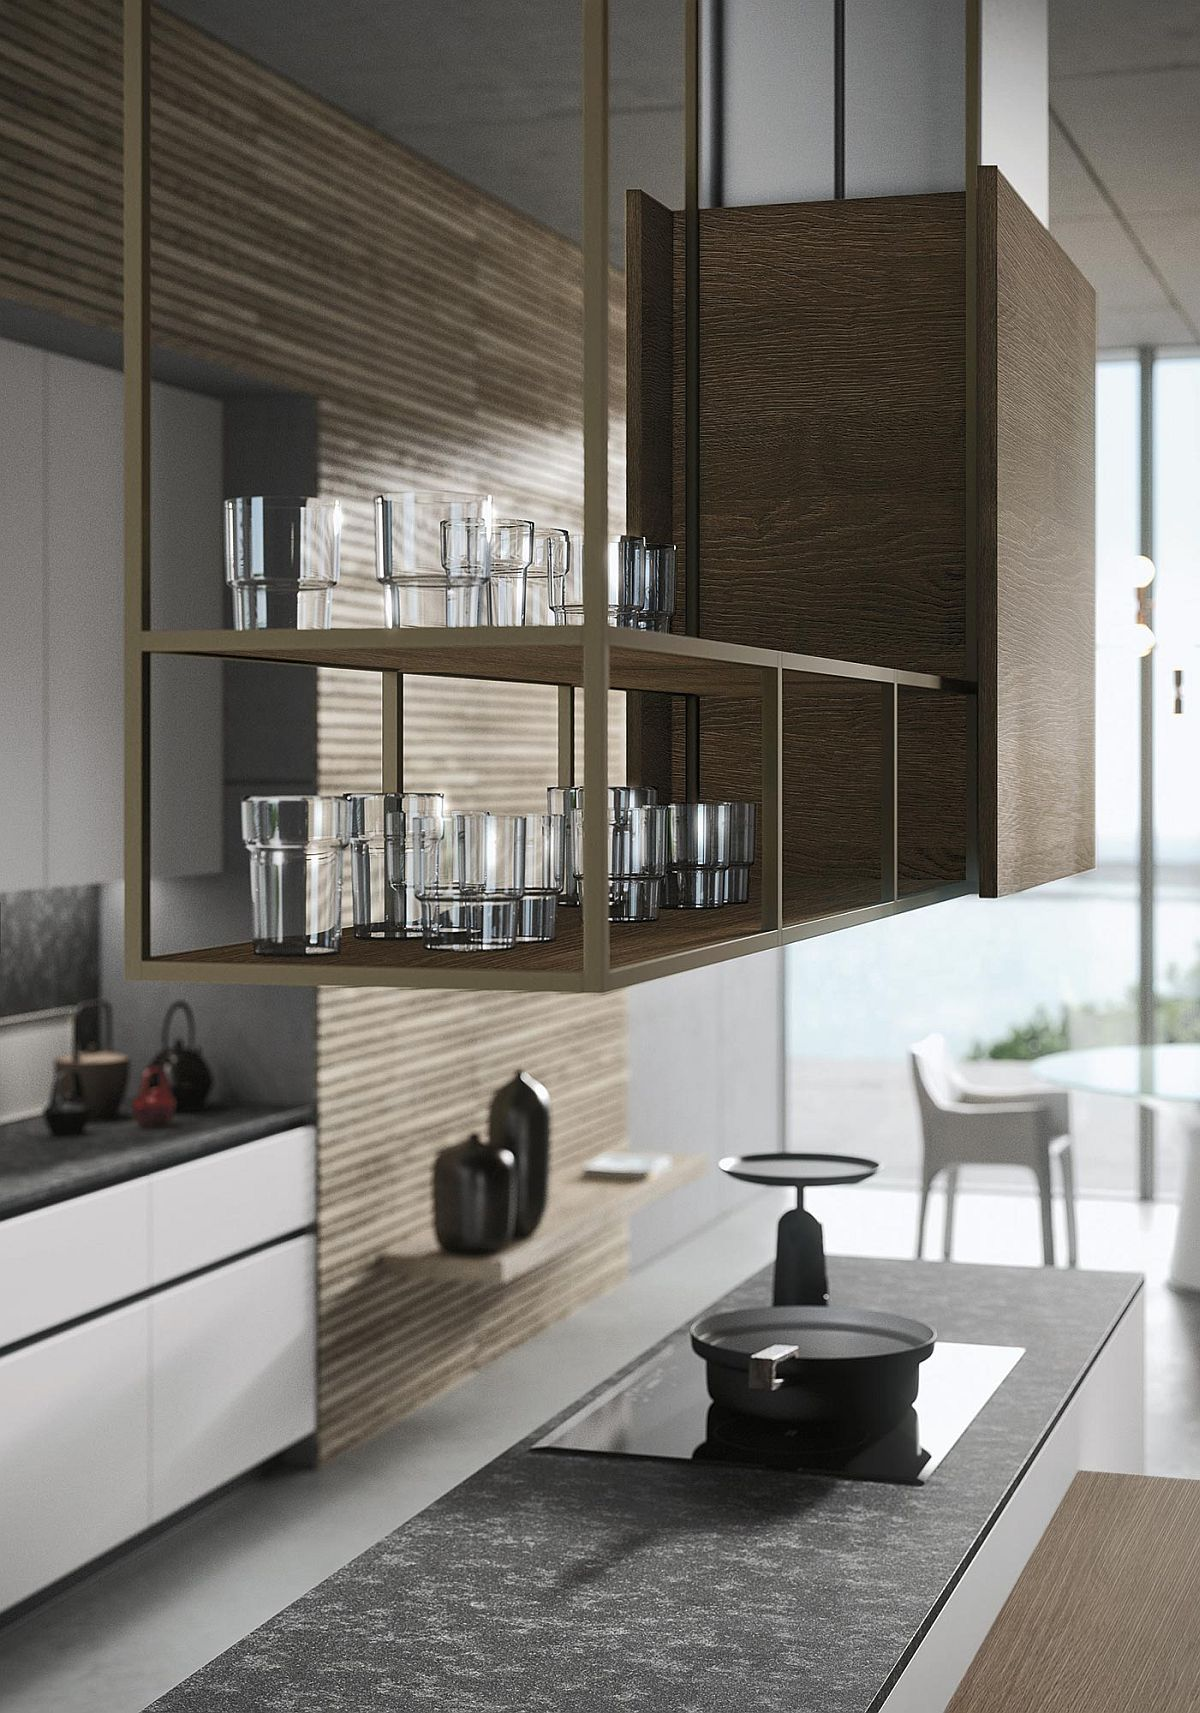 Open shelving gives the Look Kitchen an airy and contemporay appeal